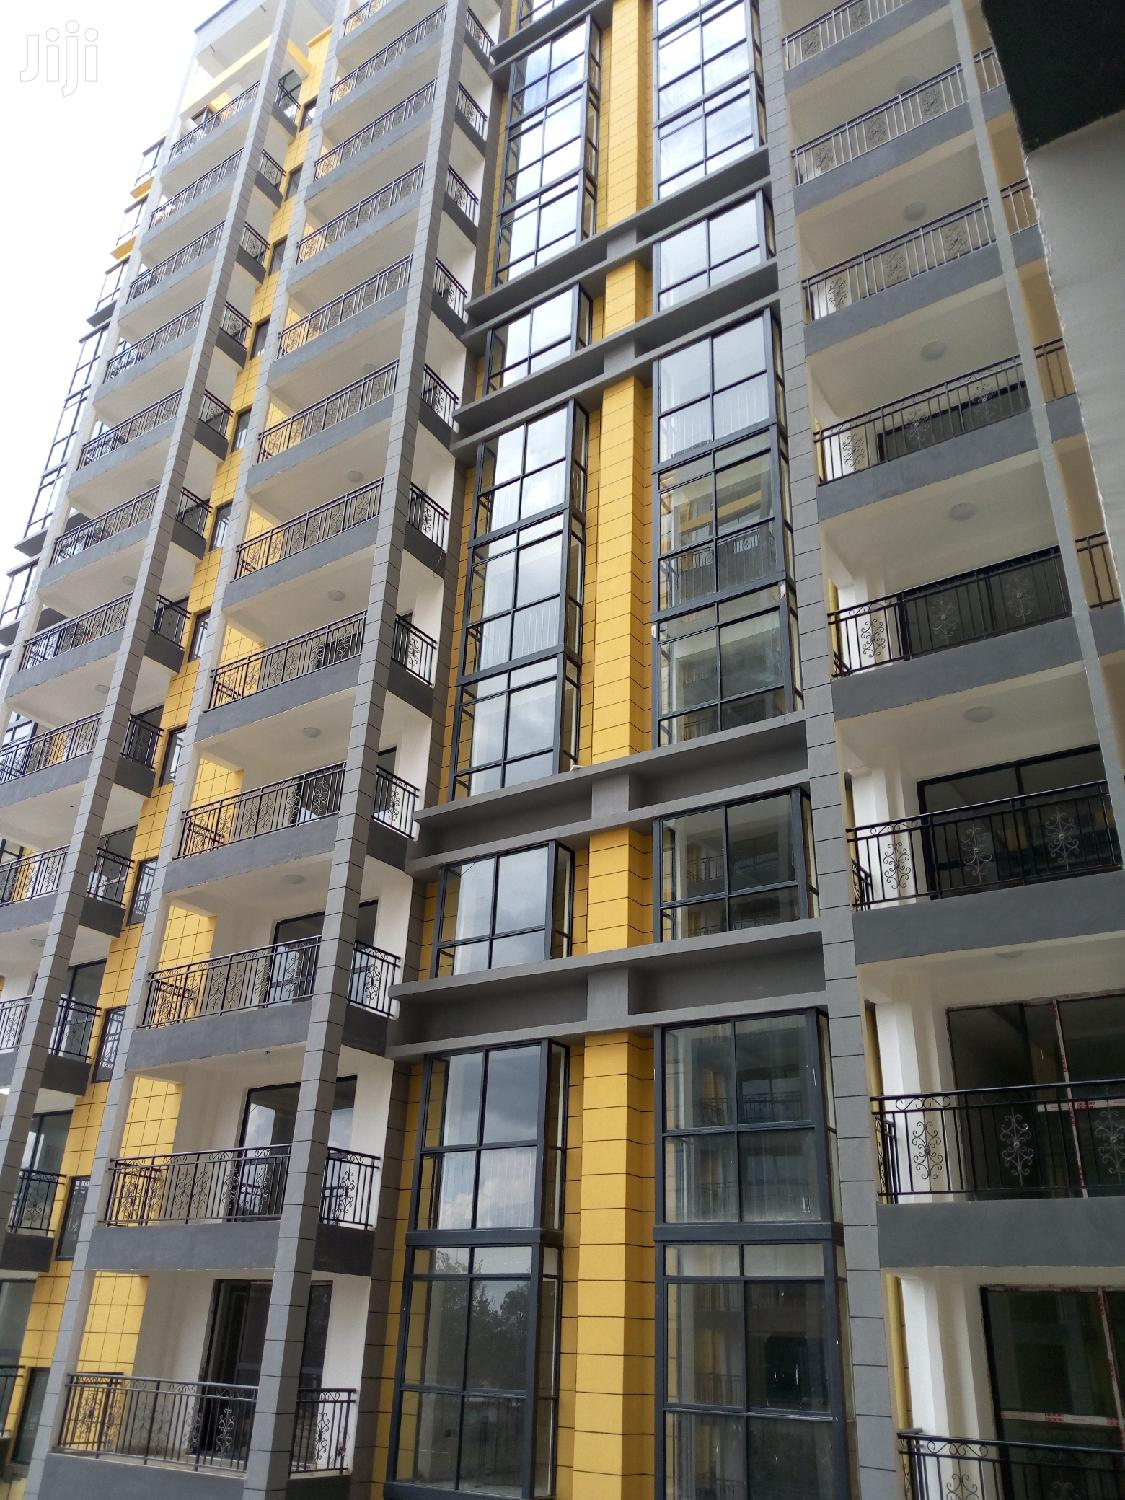 Archive: 2 And 3 Bedroom Apartments And Duplexes For Sale In Kilimani, Nairobi